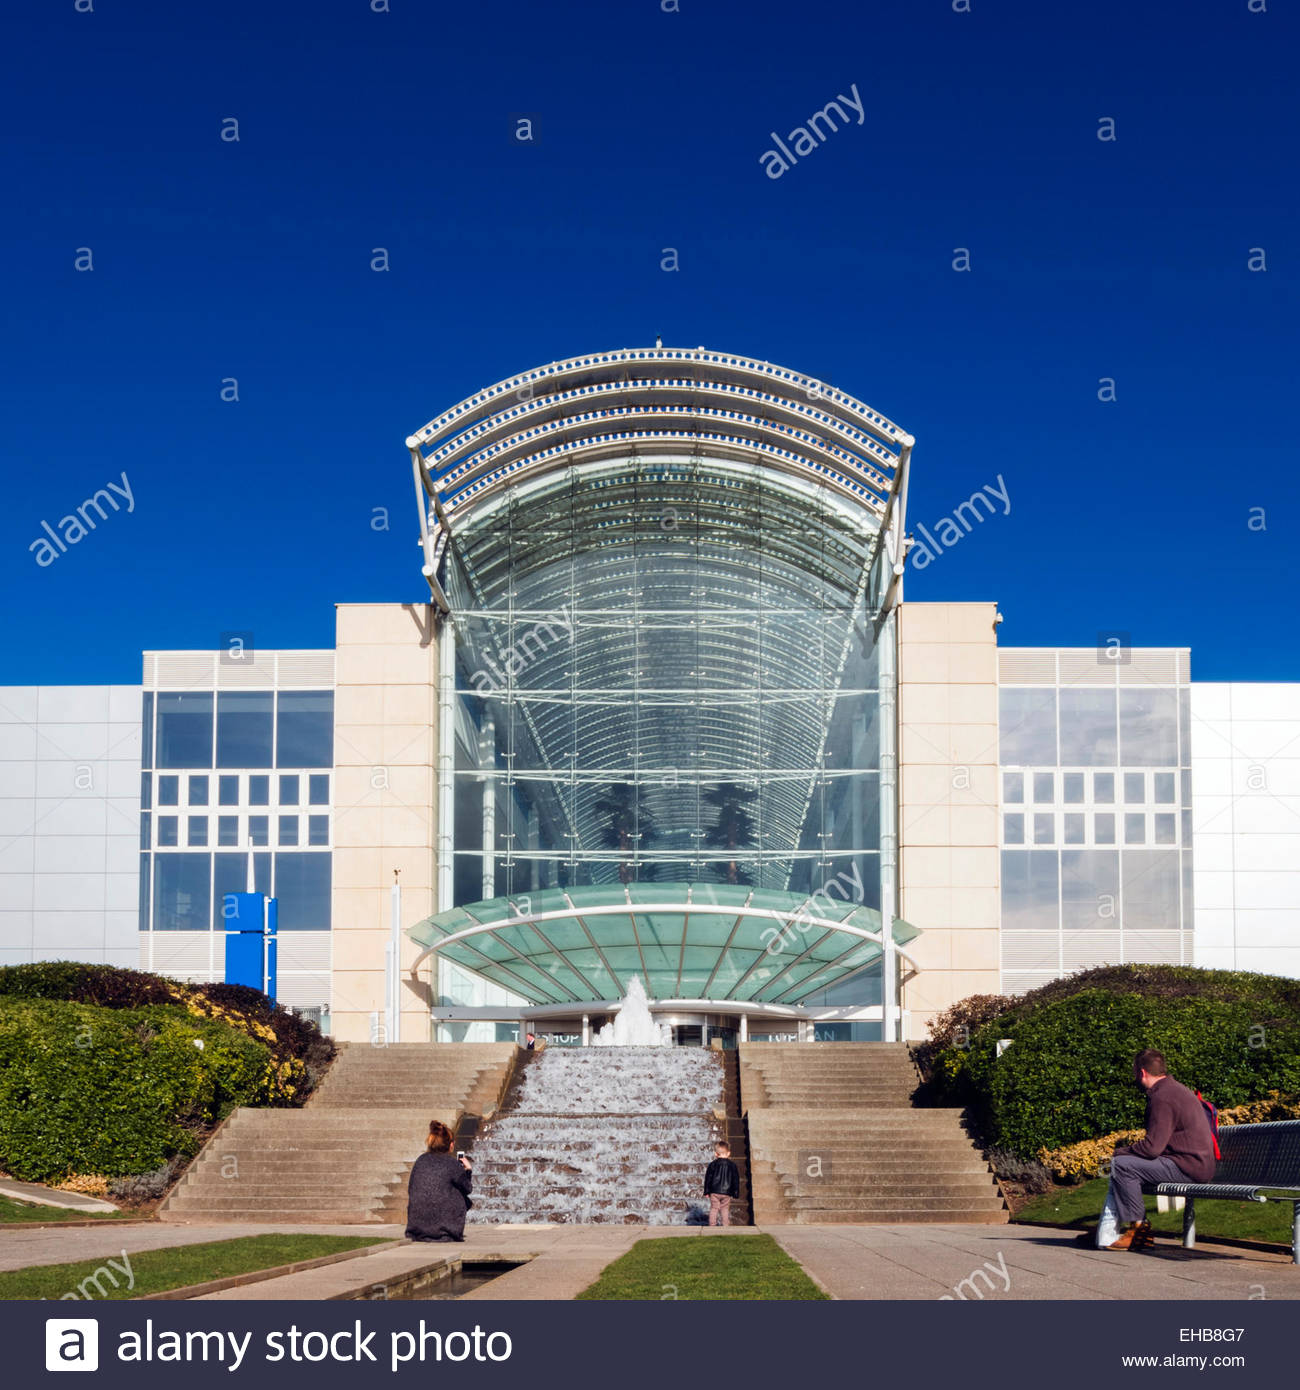 Cribbs Causeway shopping mall exterior, near Bristol, UK. - Stock Image